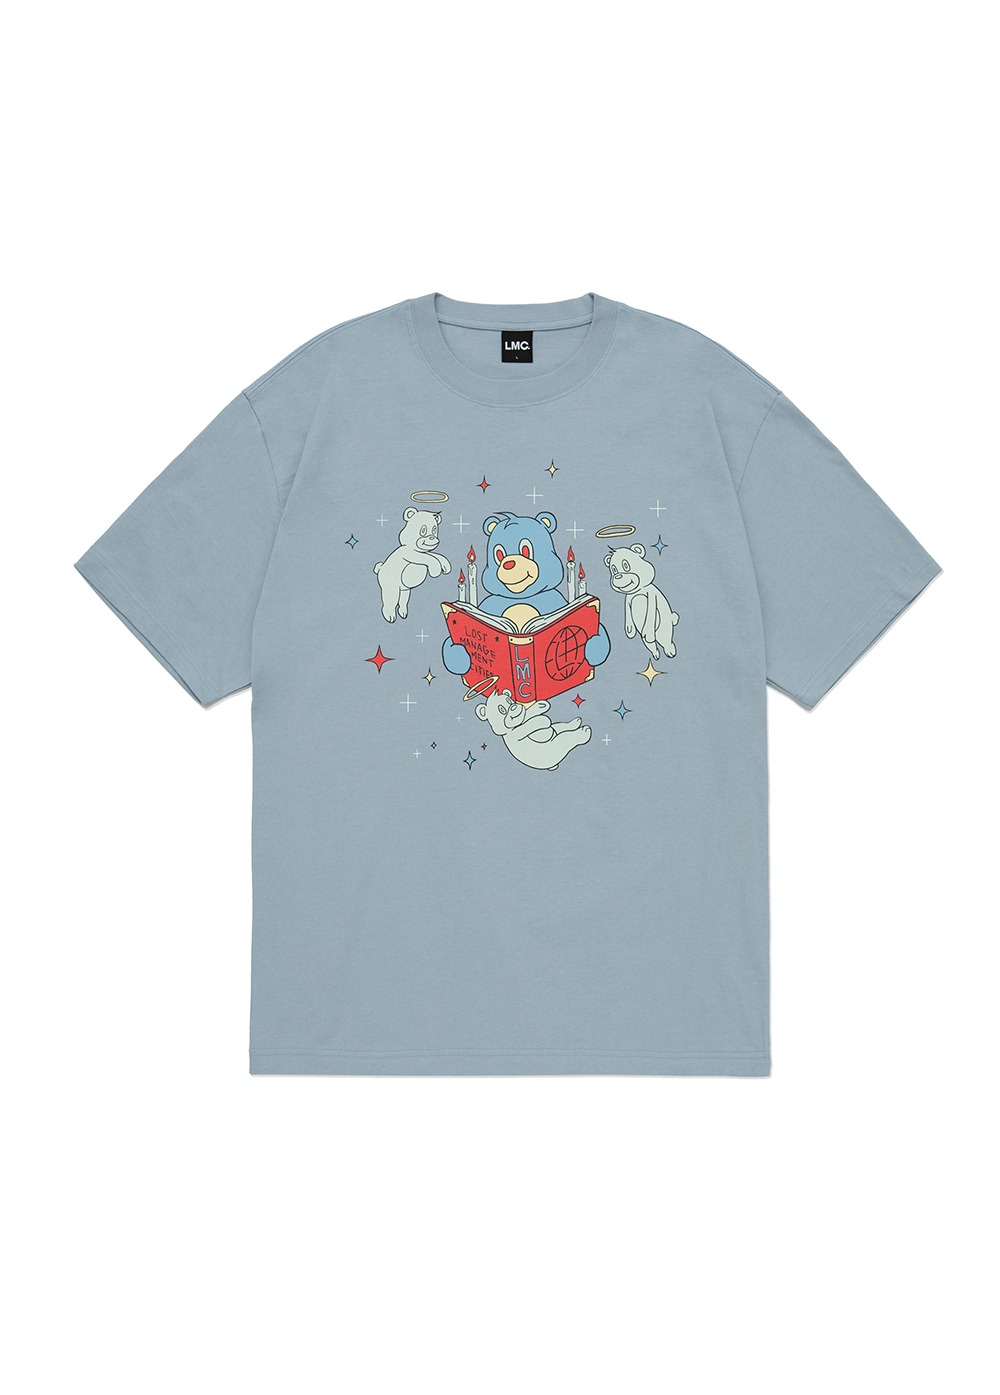 LMC GHOST BEARS TEE blue gray